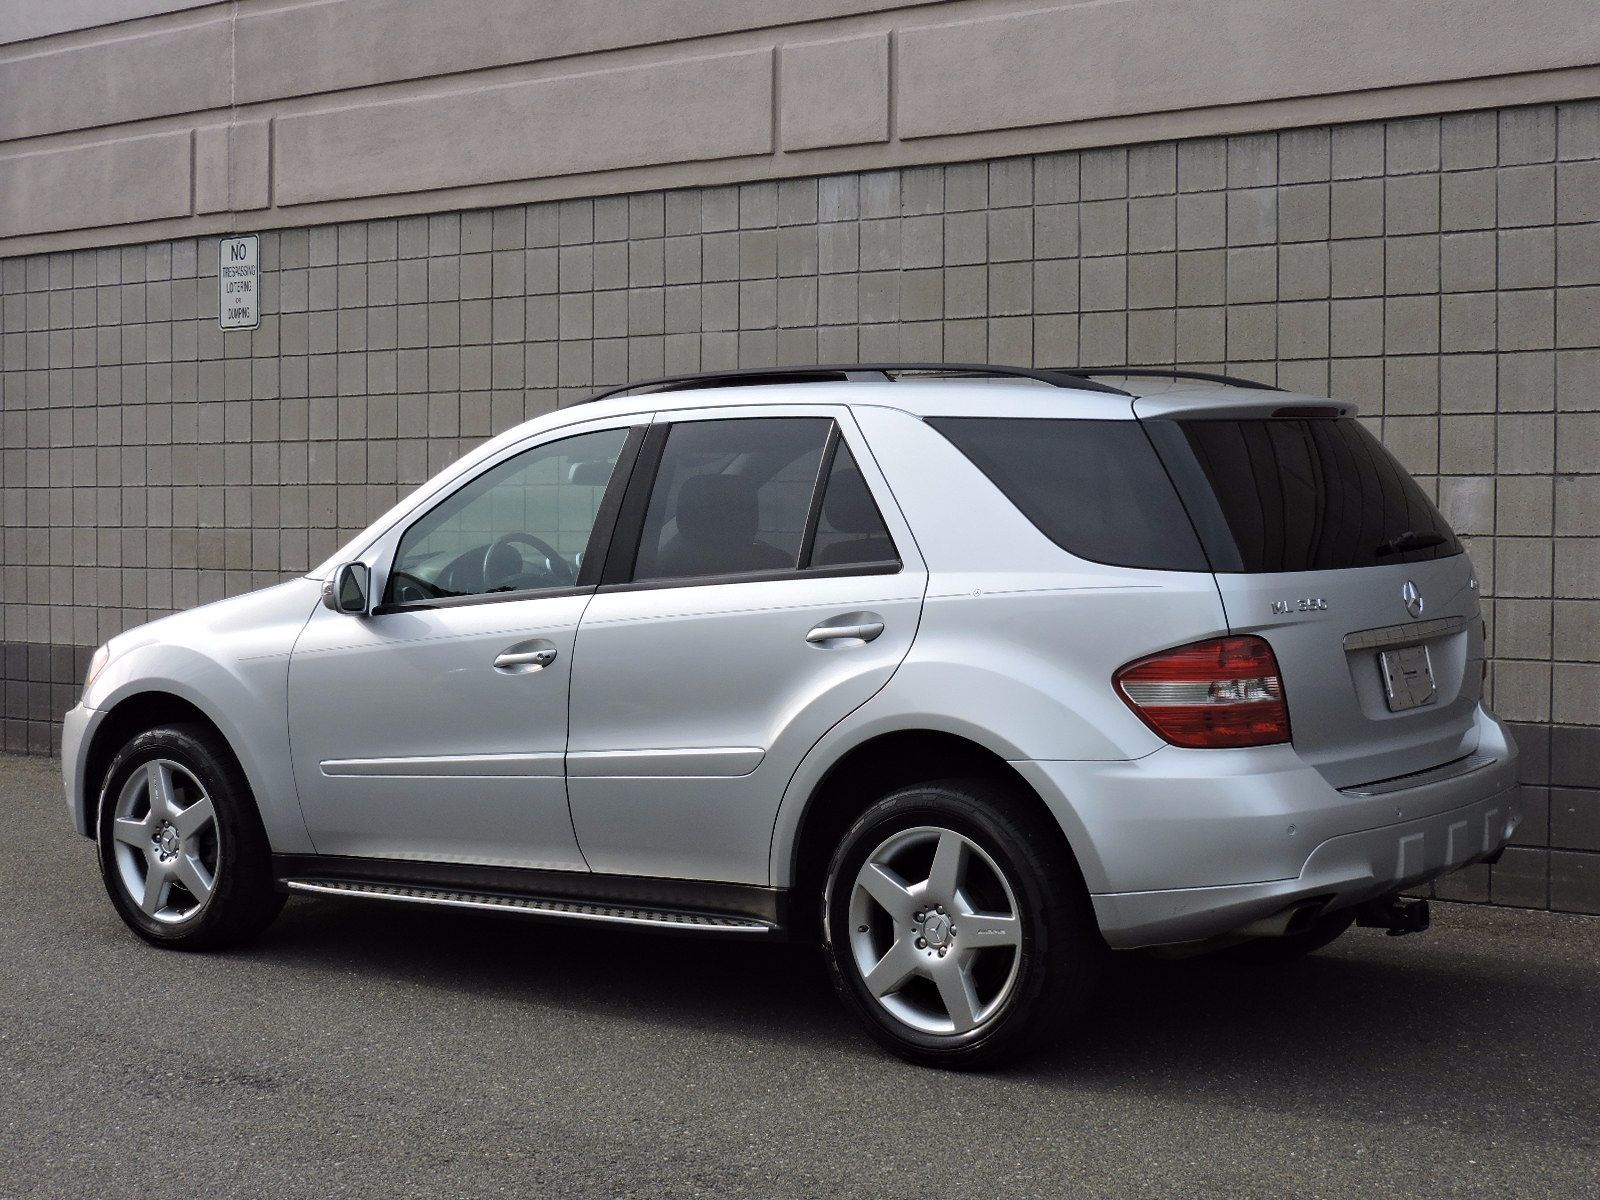 Used 2007 mercedes benz ml350 3 5l at auto house usa saugus for Mercedes benz ml350 2007